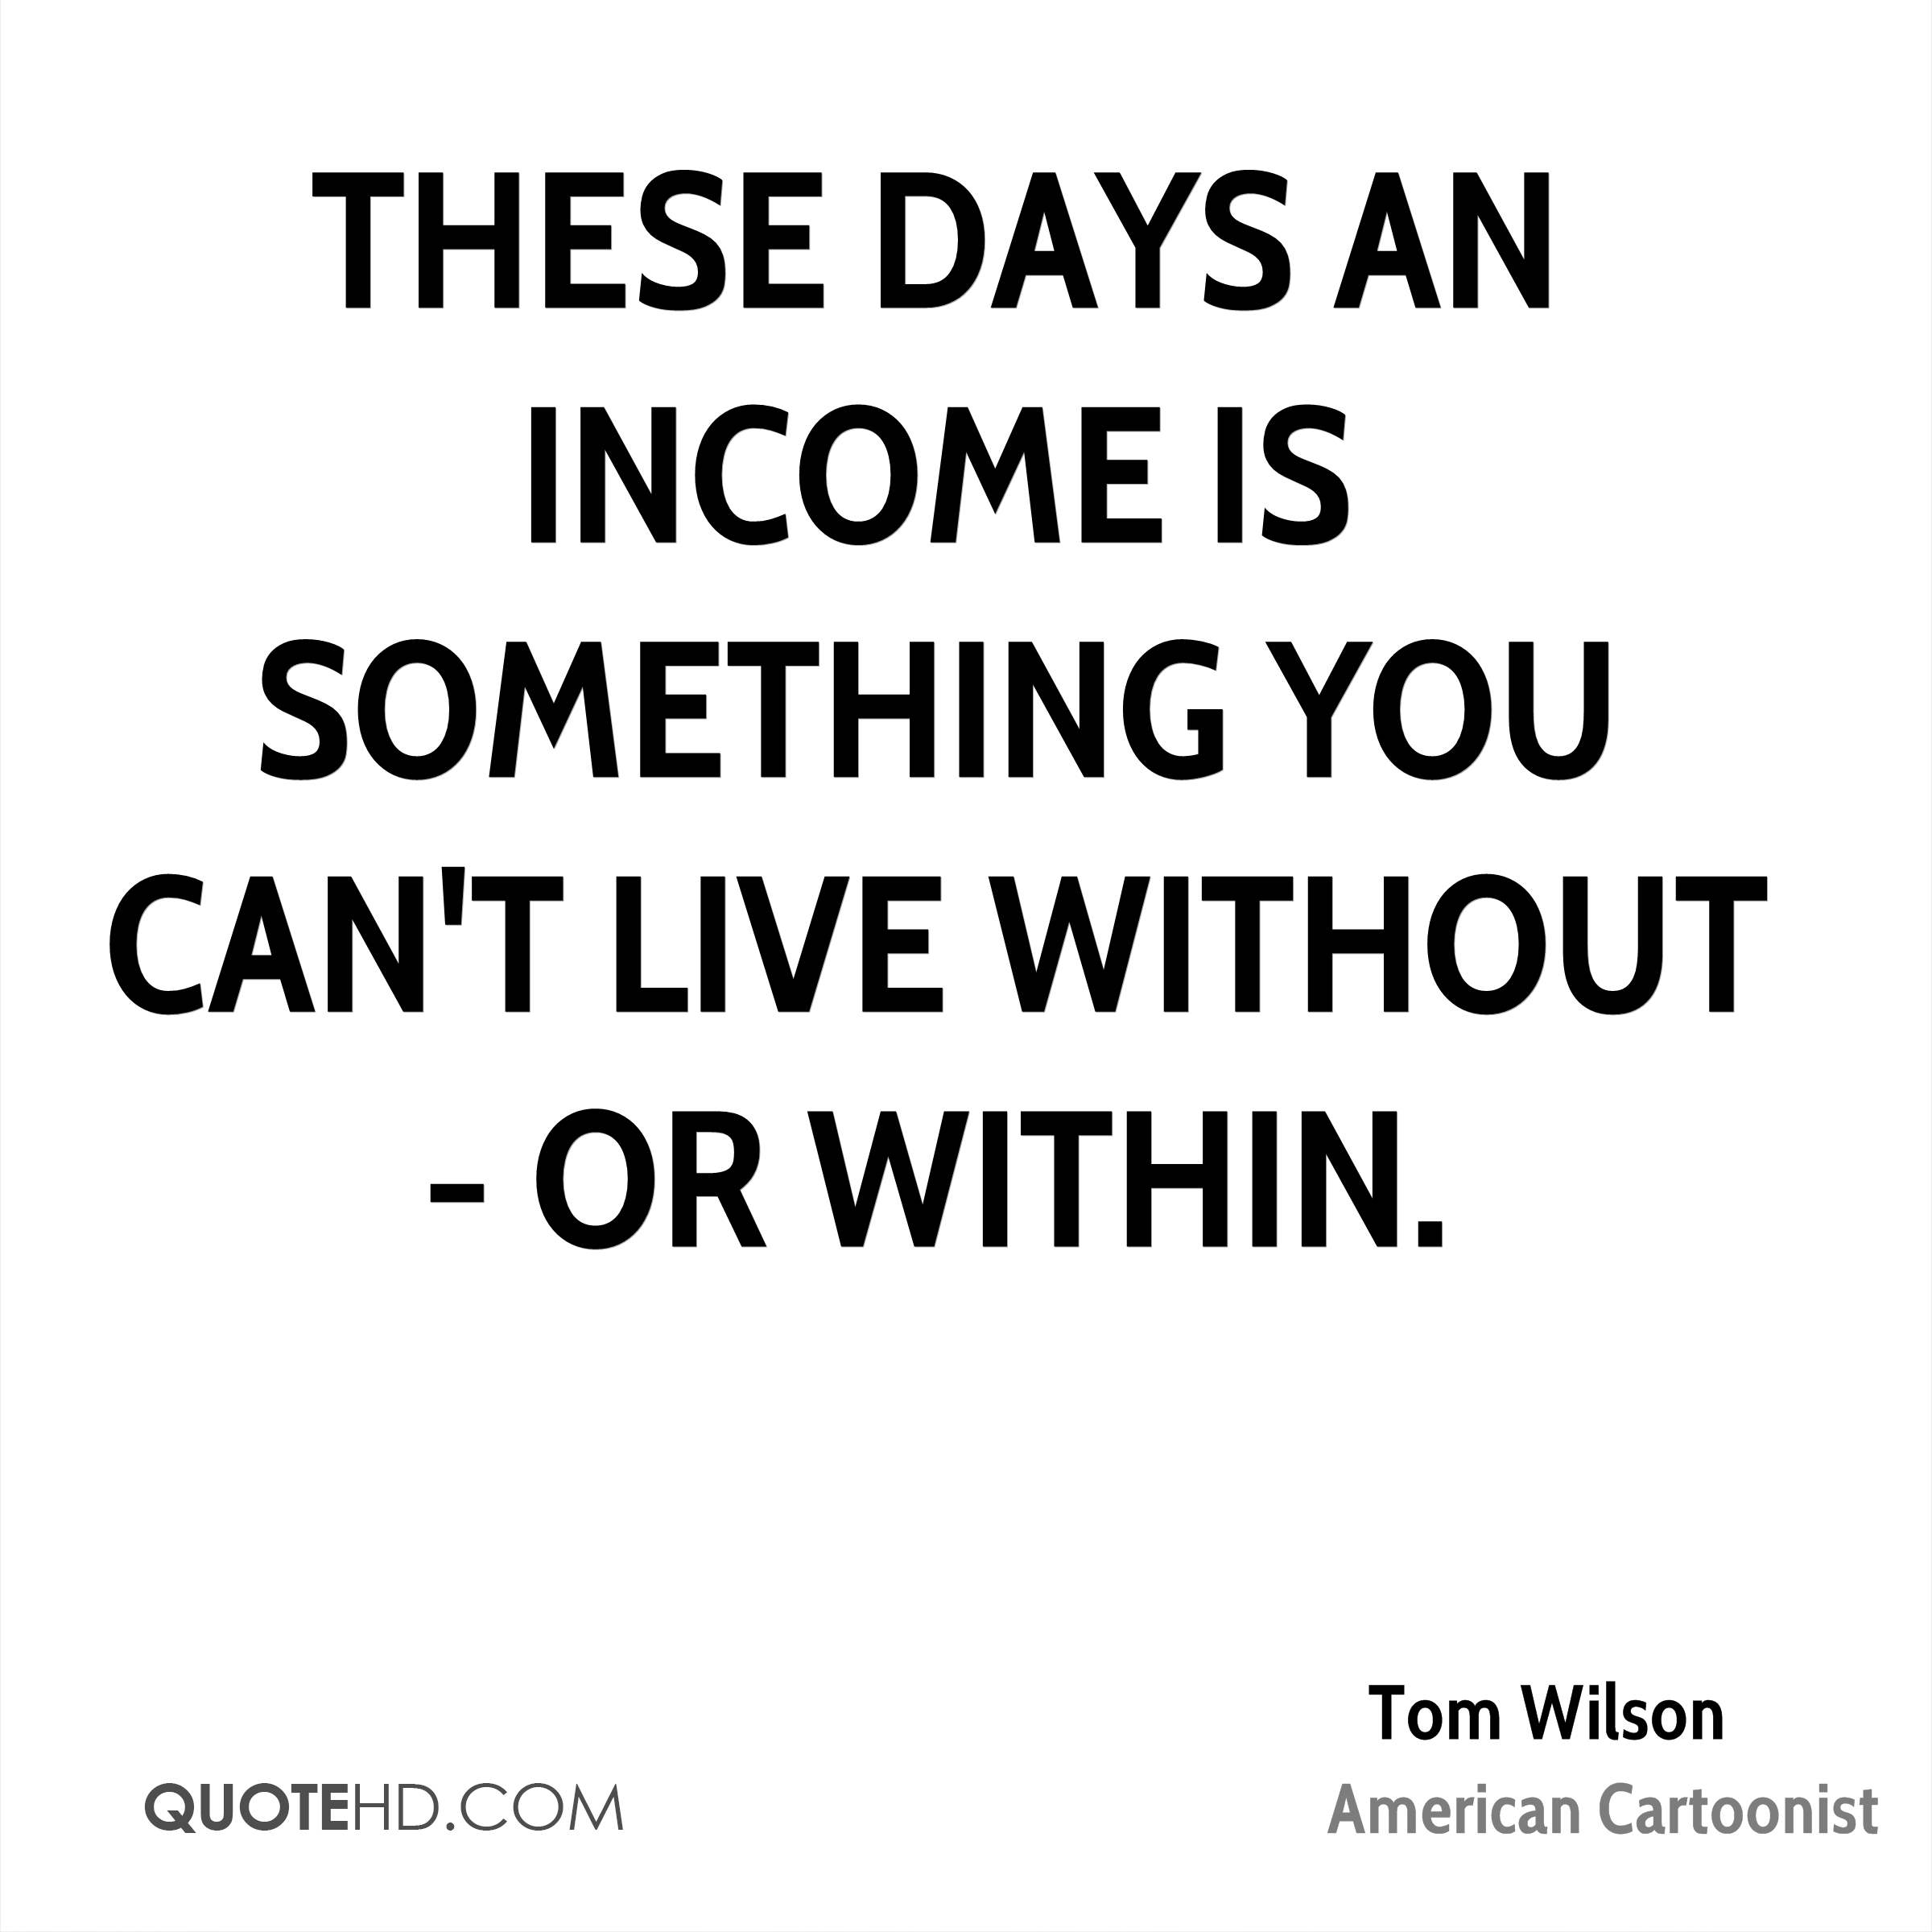 These days an income is something you can't live without - or within.